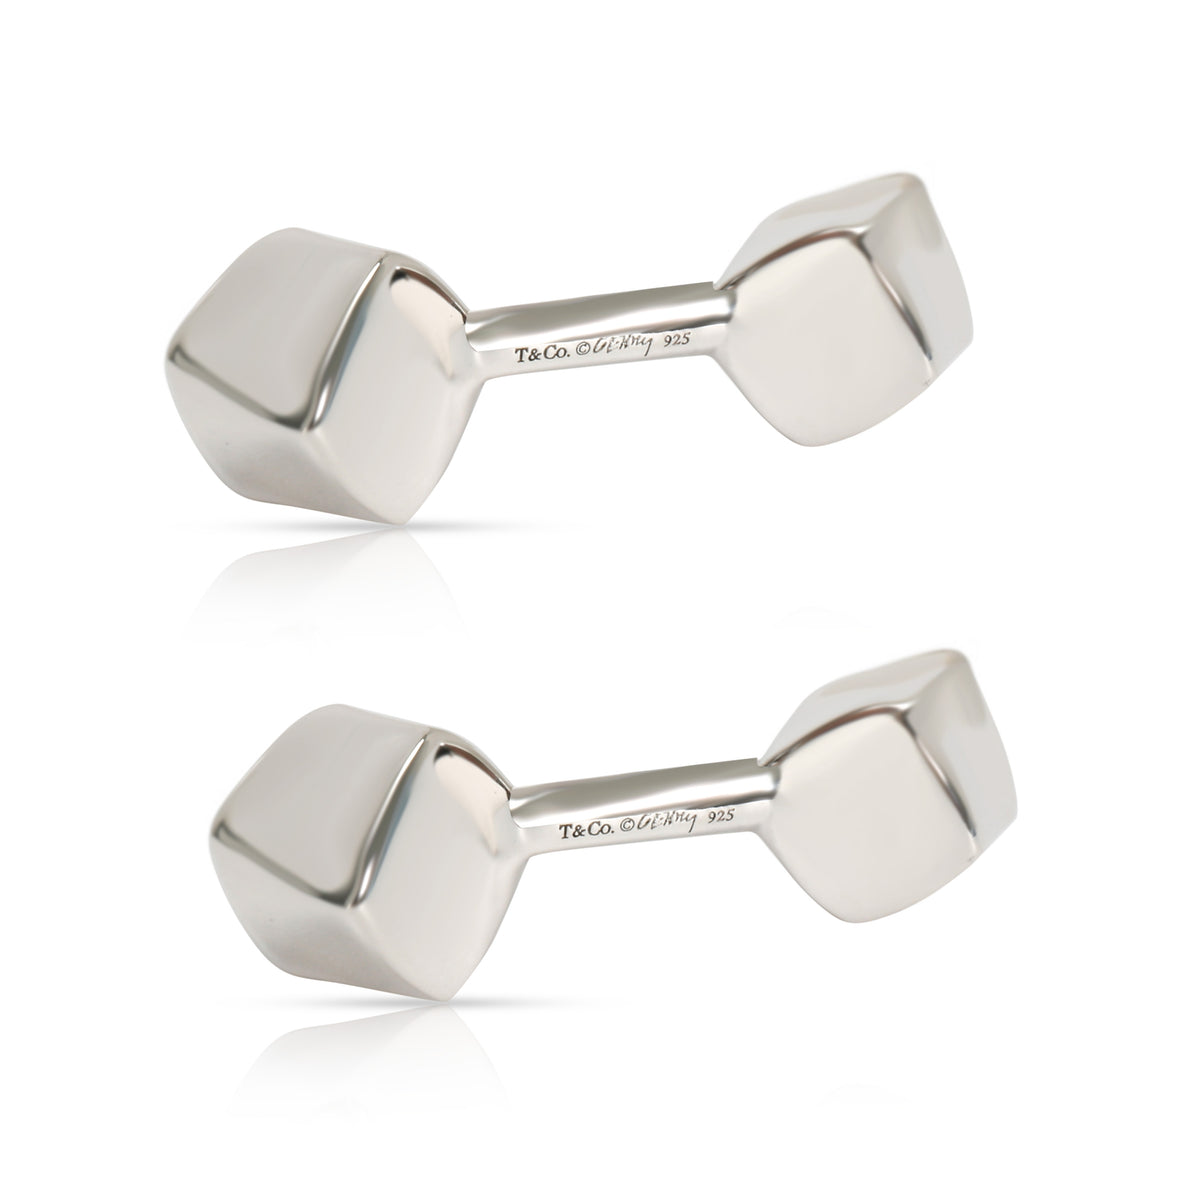 Tiffany & Co. Frank Gehry Torque Cufflinks in  Sterling Silver